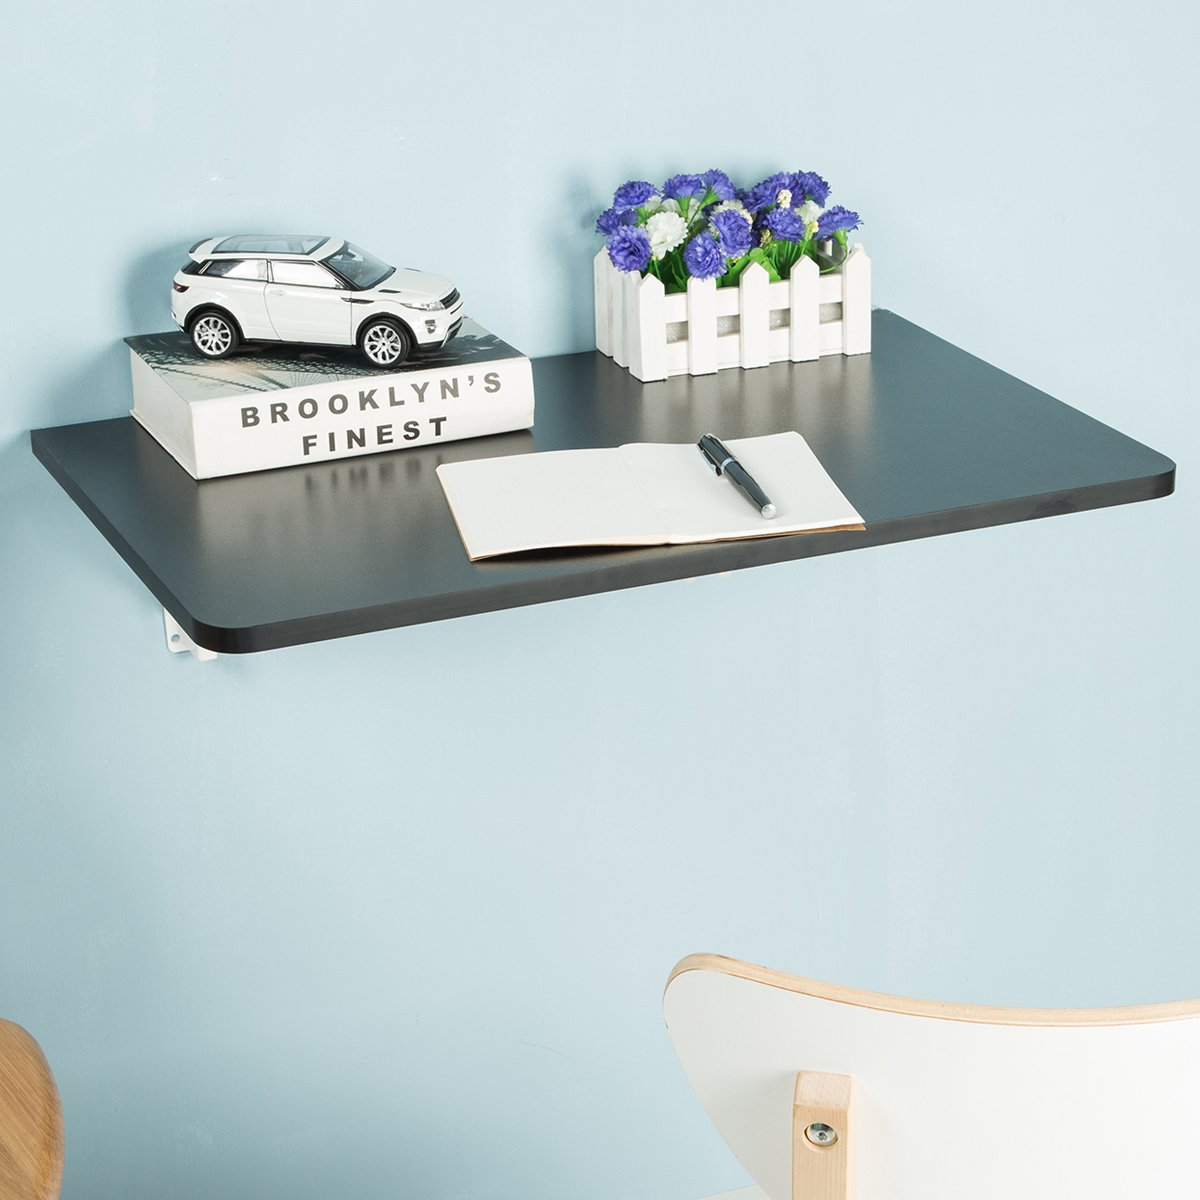 FSC Certified Wall-Mounted Folding Table for Office Home Kitchen, Black by Edencomer